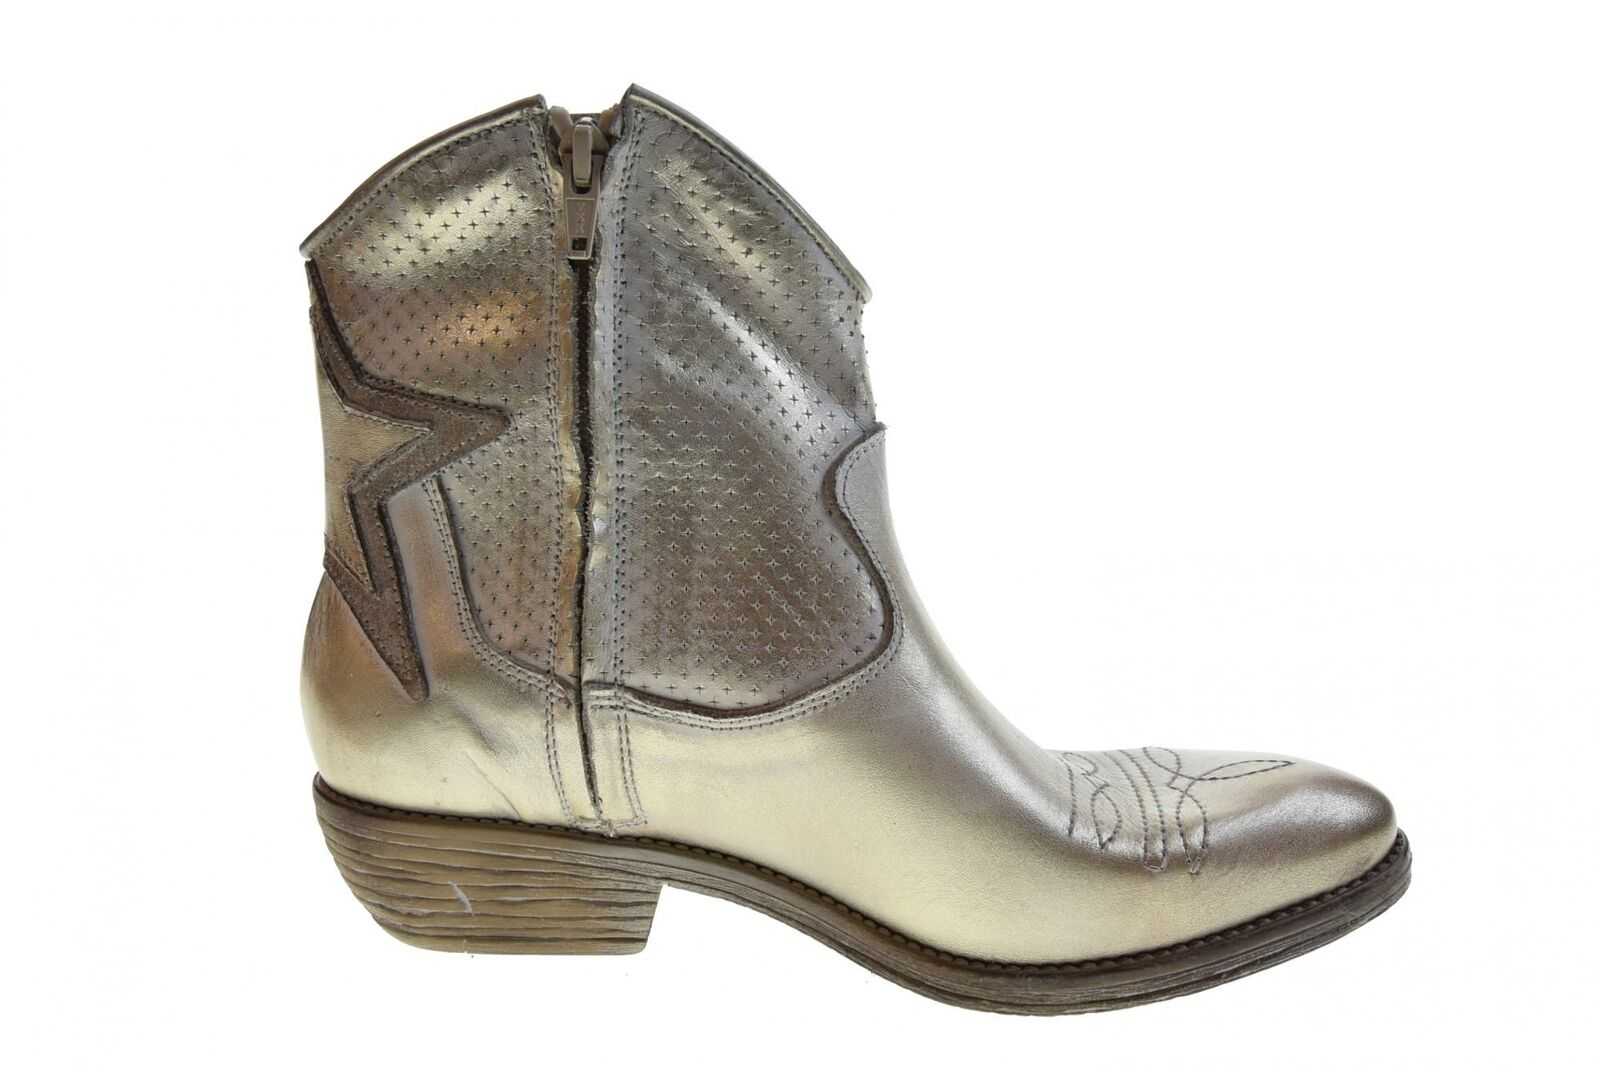 Erman's P19u WEST gold Texan boots woman woman woman shoes fbd12d